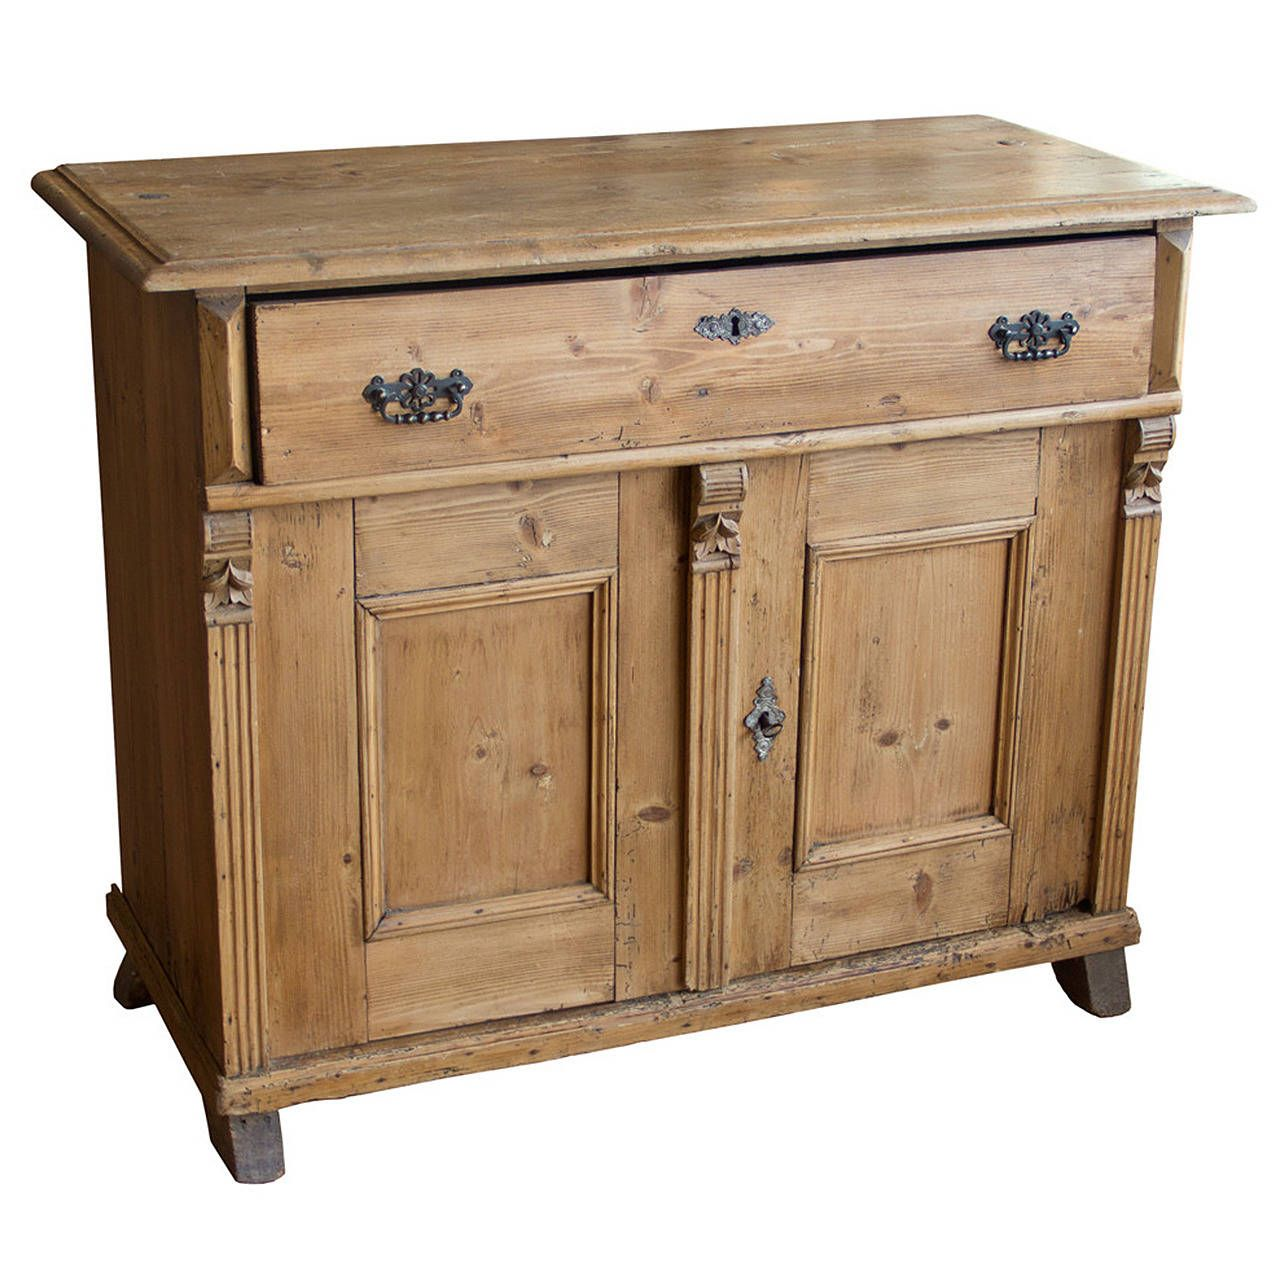 Superb Antique English Pine Cupboard Pine Bedroom Furniture, English Antique  Furniture, Farmhouse Furniture, Primitive